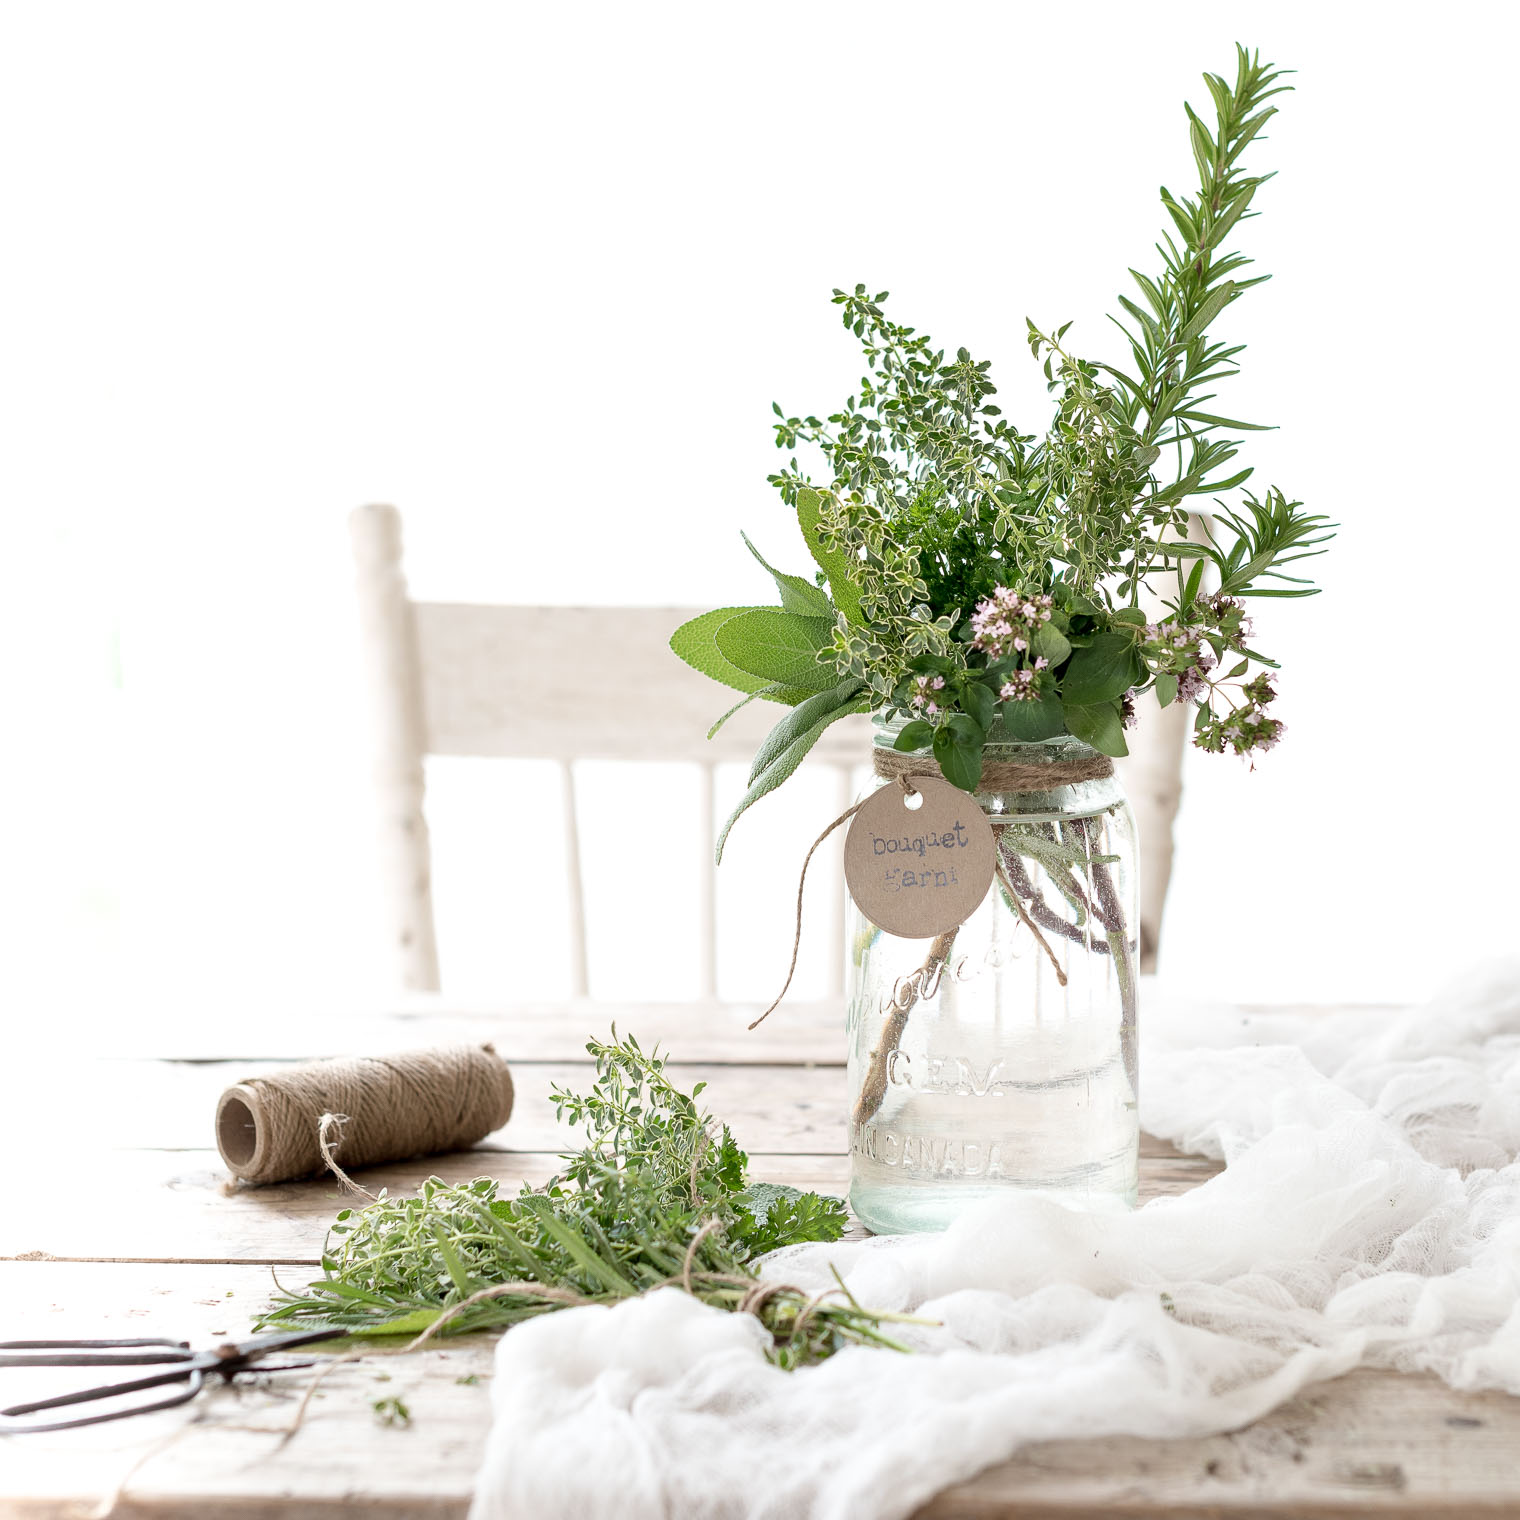 Late Summer Arrangements Idea #2, Beautiful Bouquet Garni, Keeping With the Times